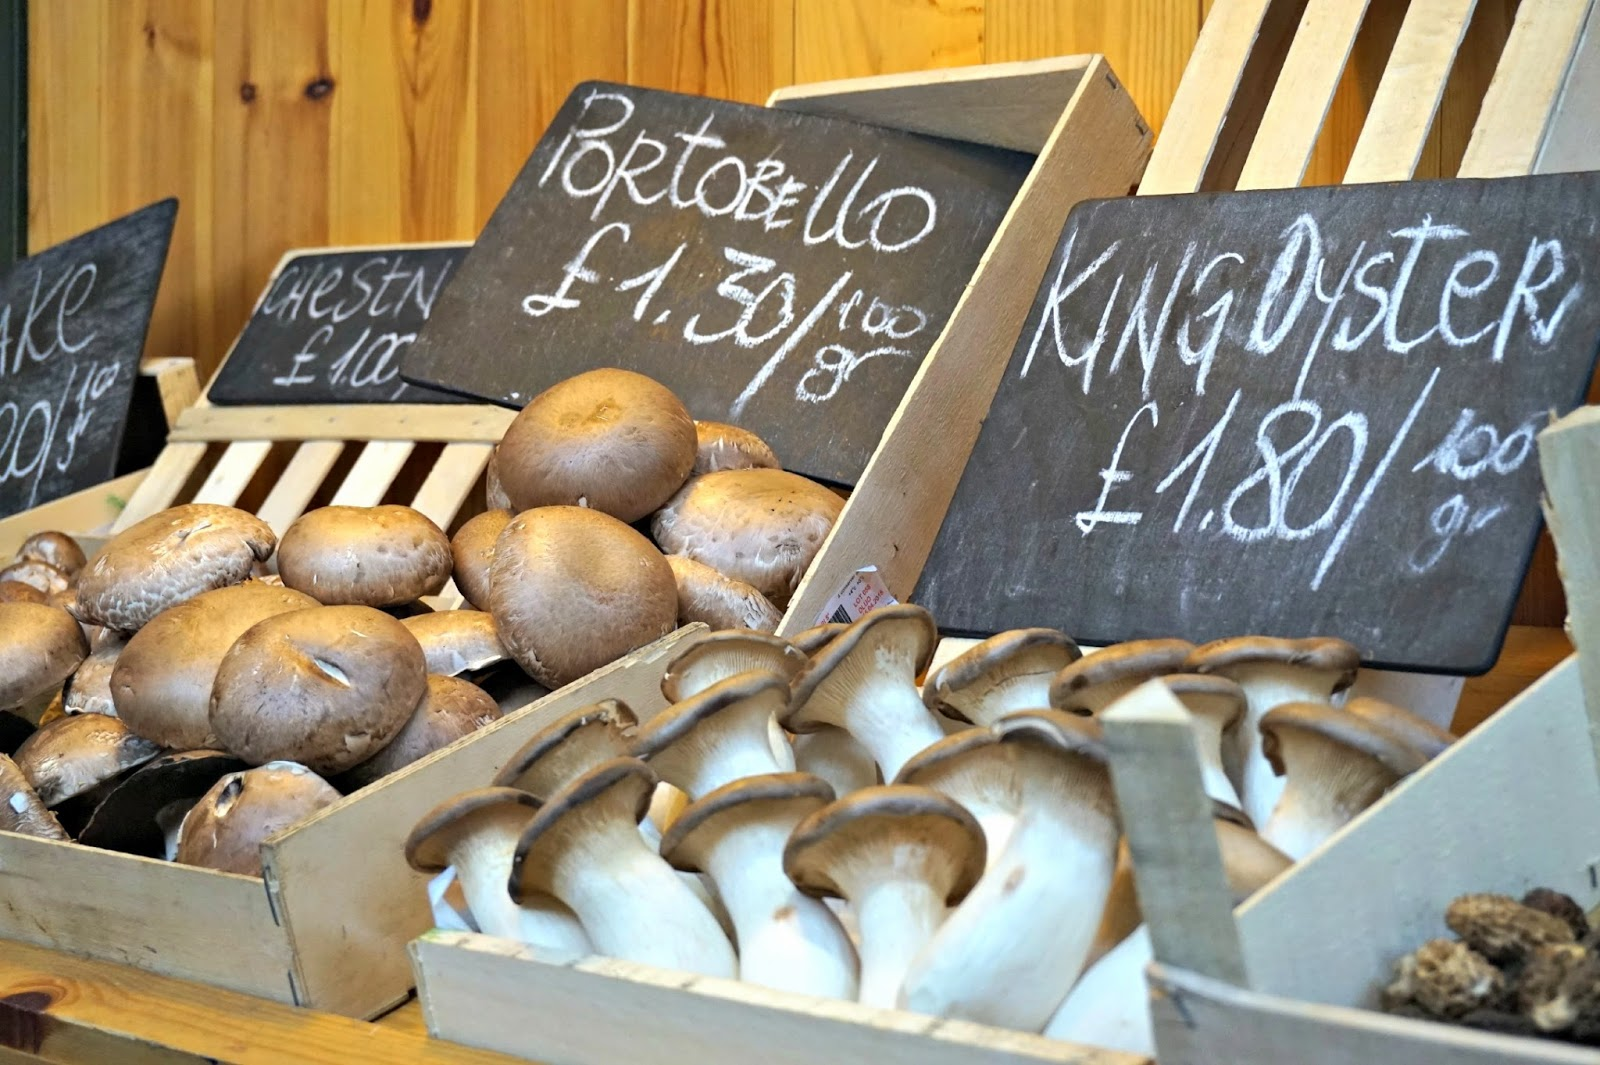 Borough Market Mushrooms